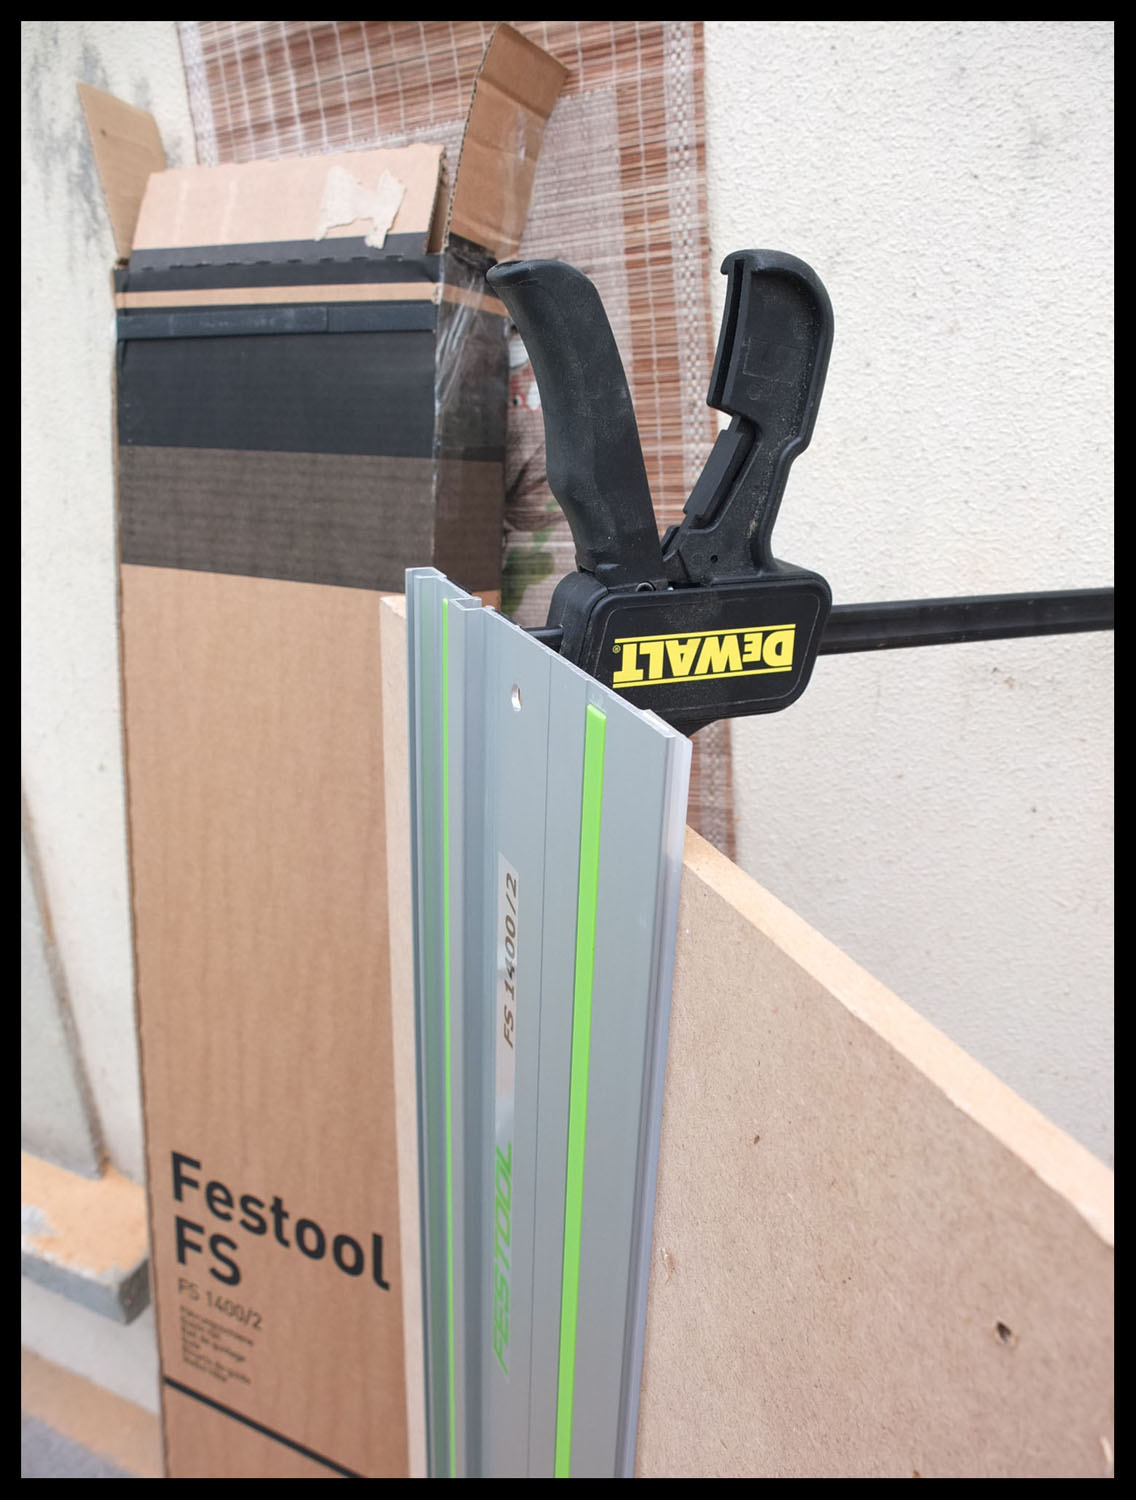 serre joint festool - Page 2 01410